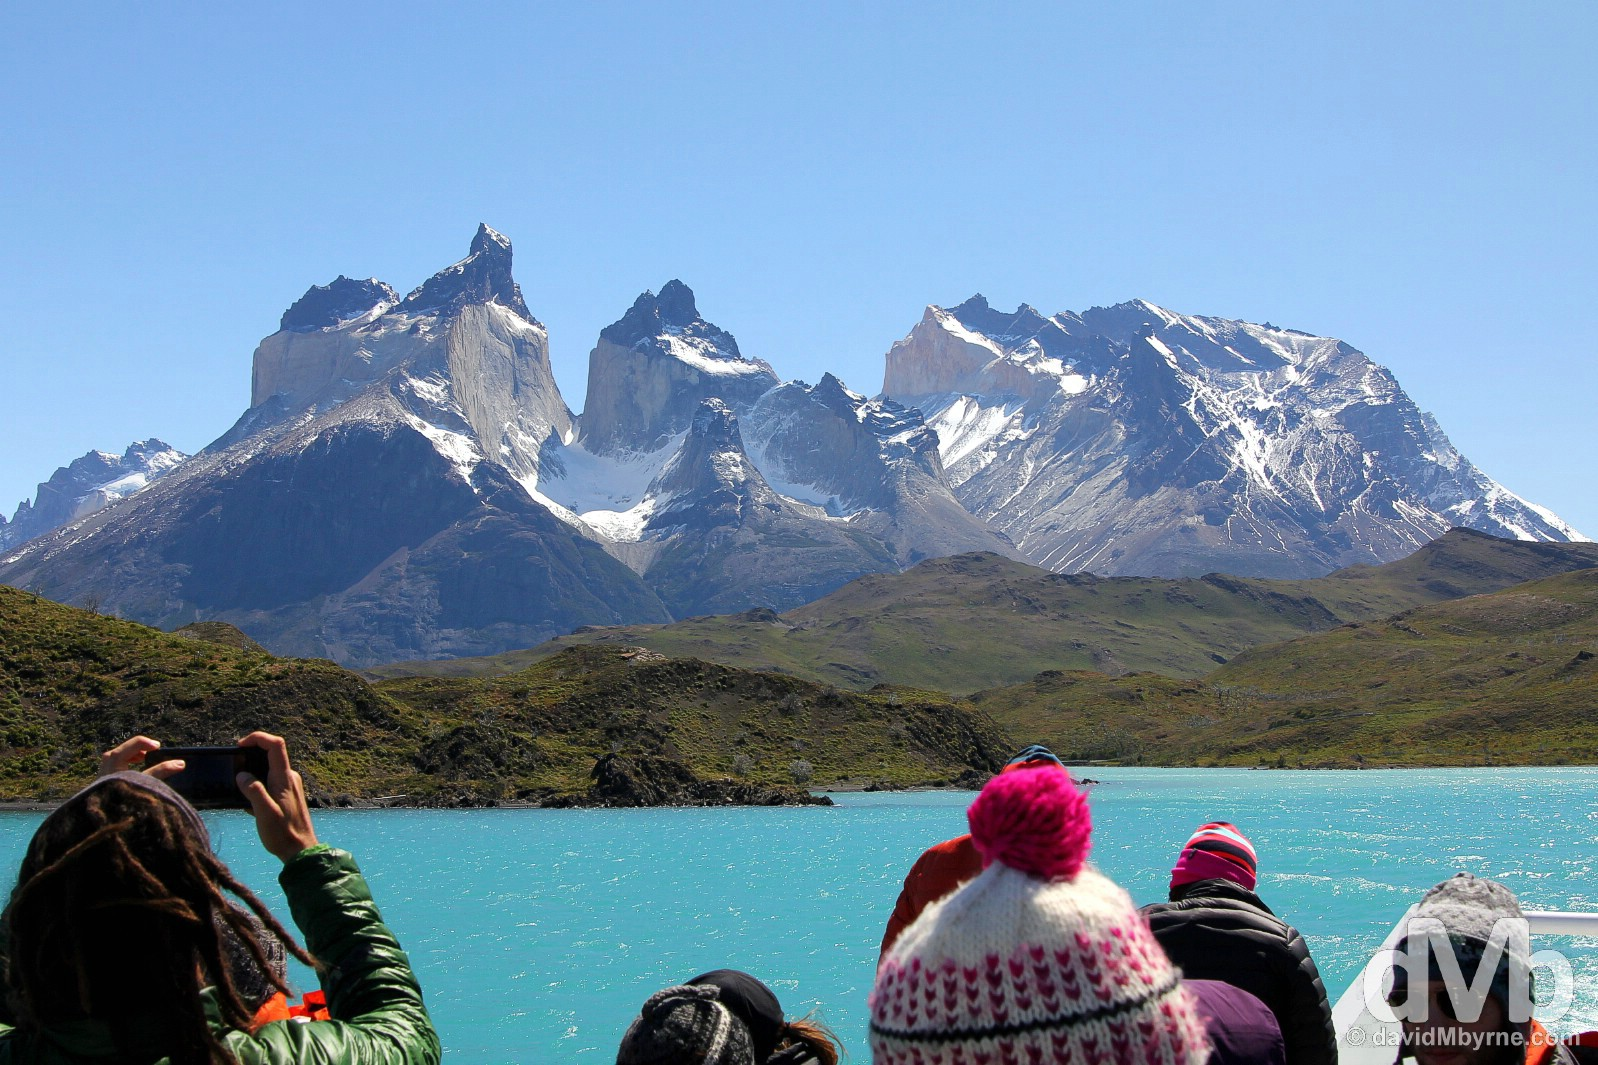 On Lago (Lake) Pehoe in Torres del Paine National Park, Chile. November 21, 2015.